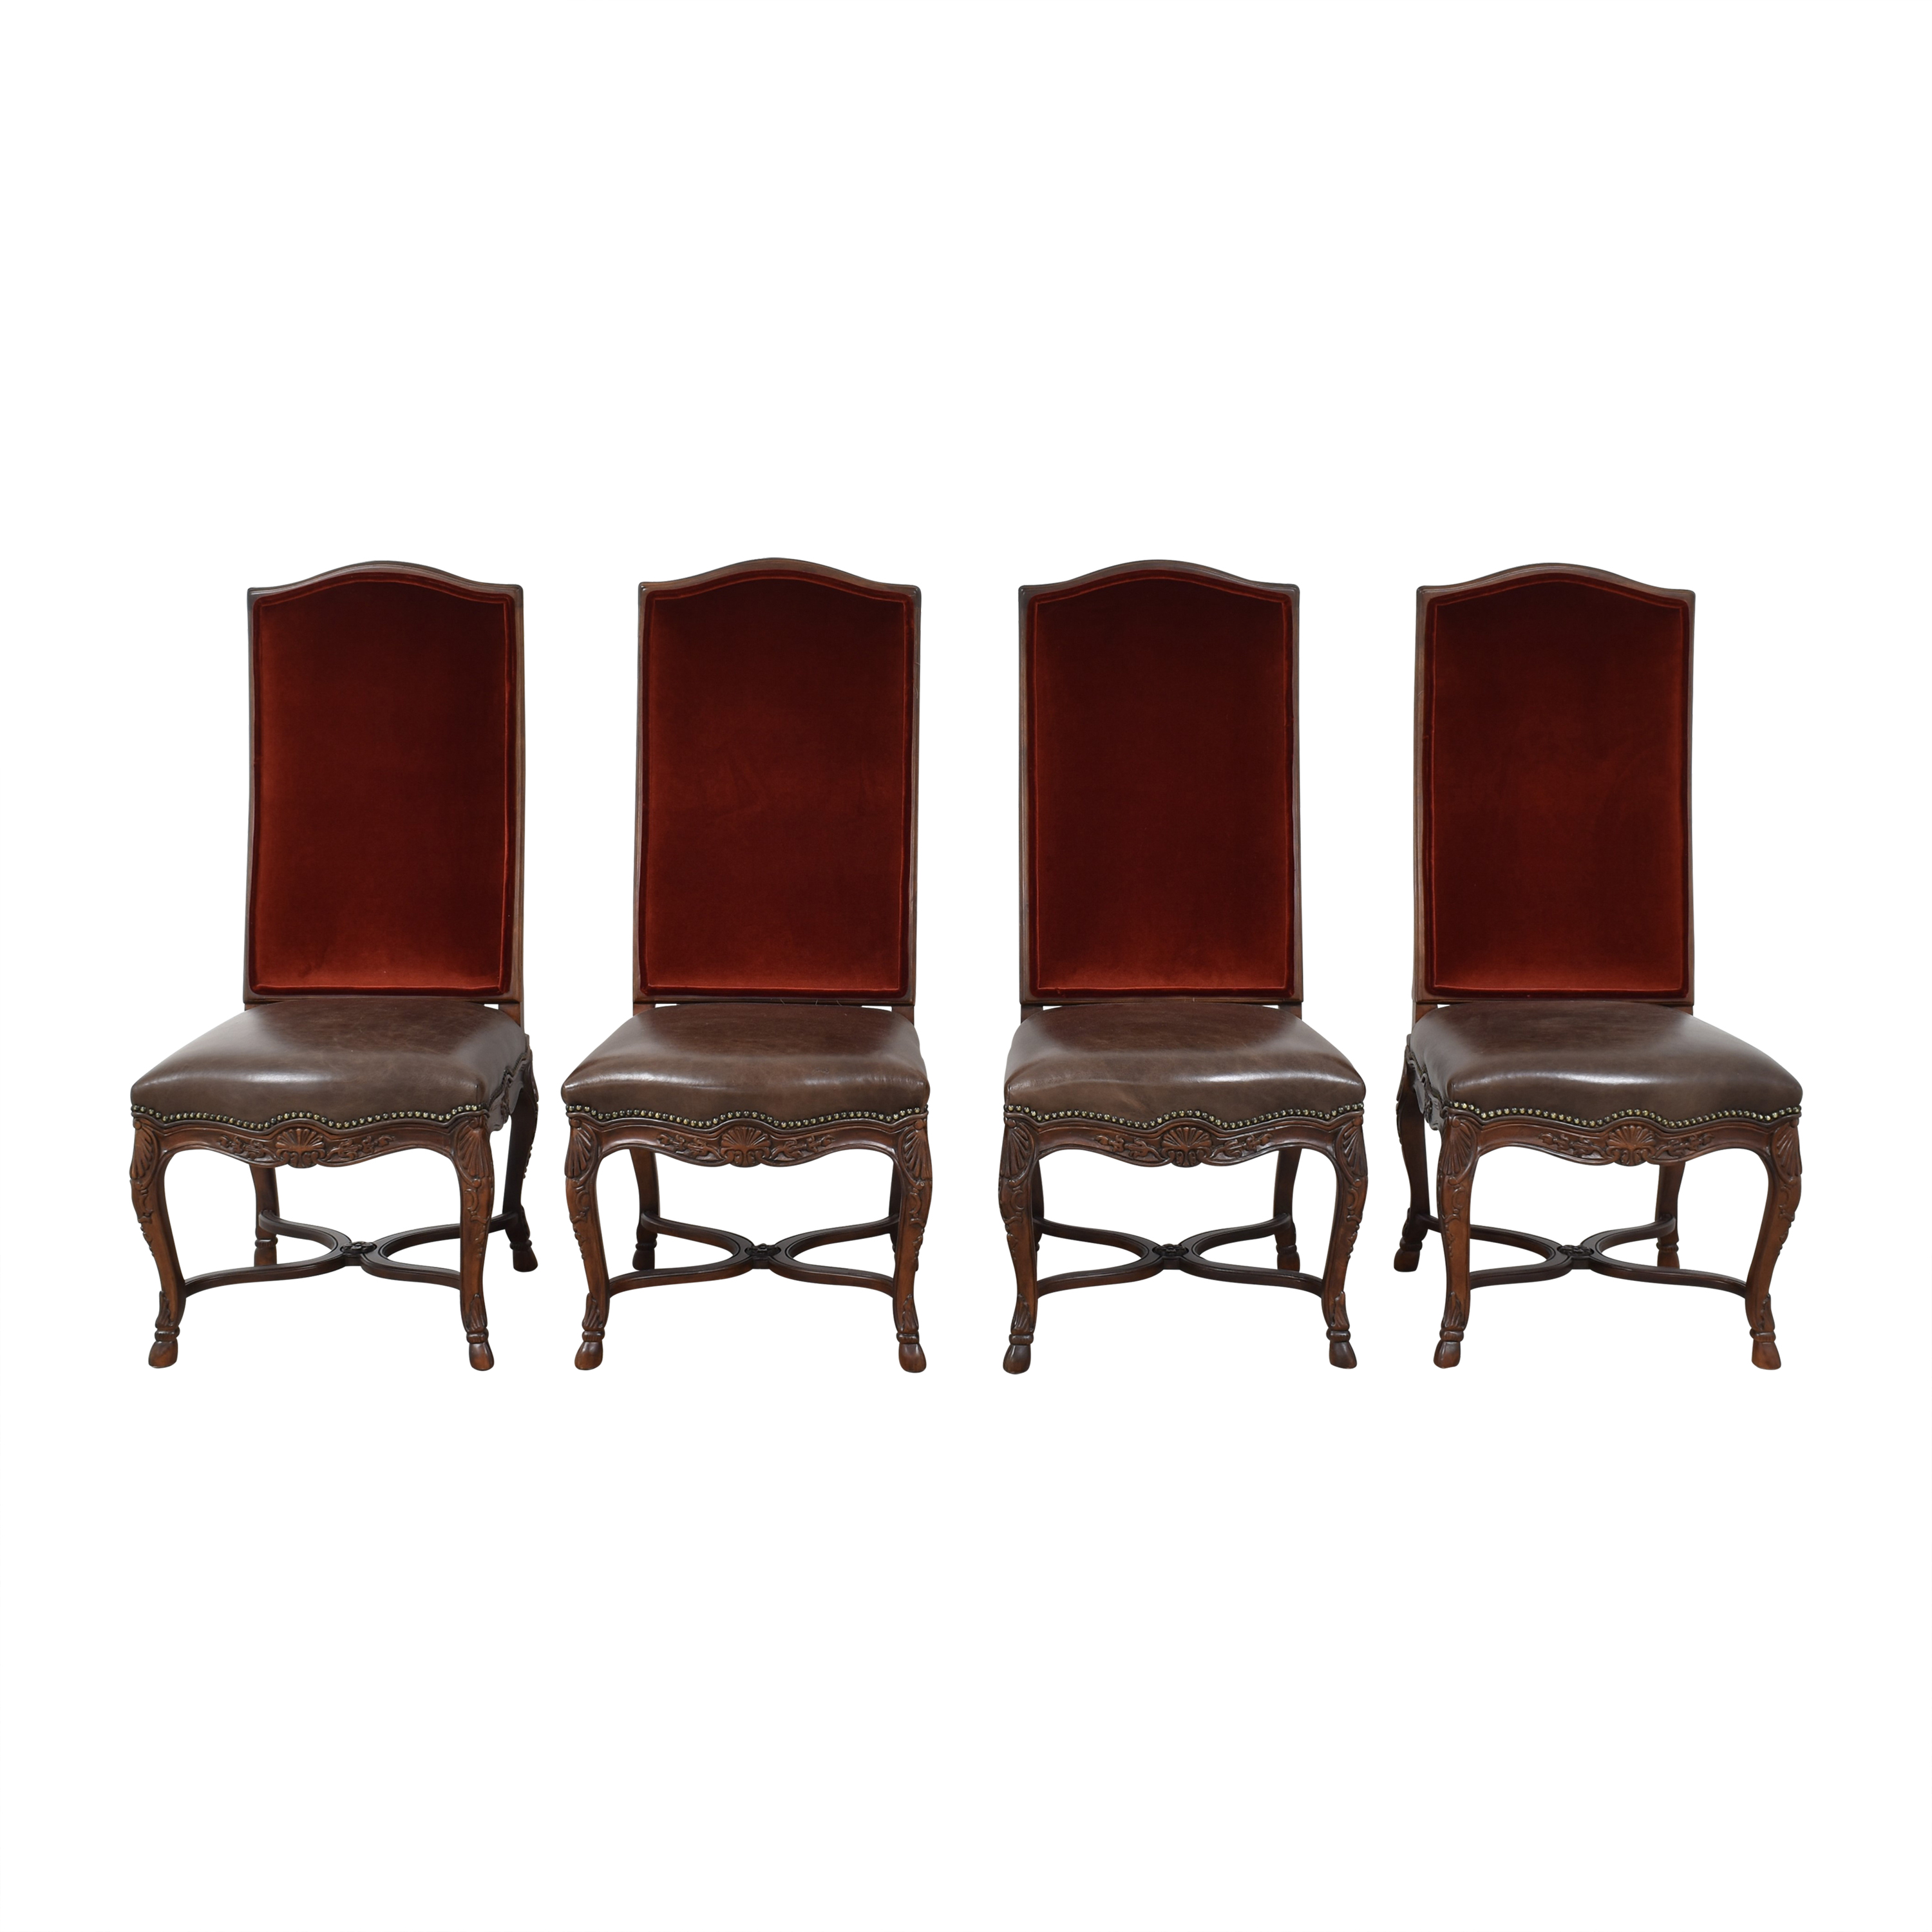 Safavieh Safavieh Hooved French Side Chairs  Chairs